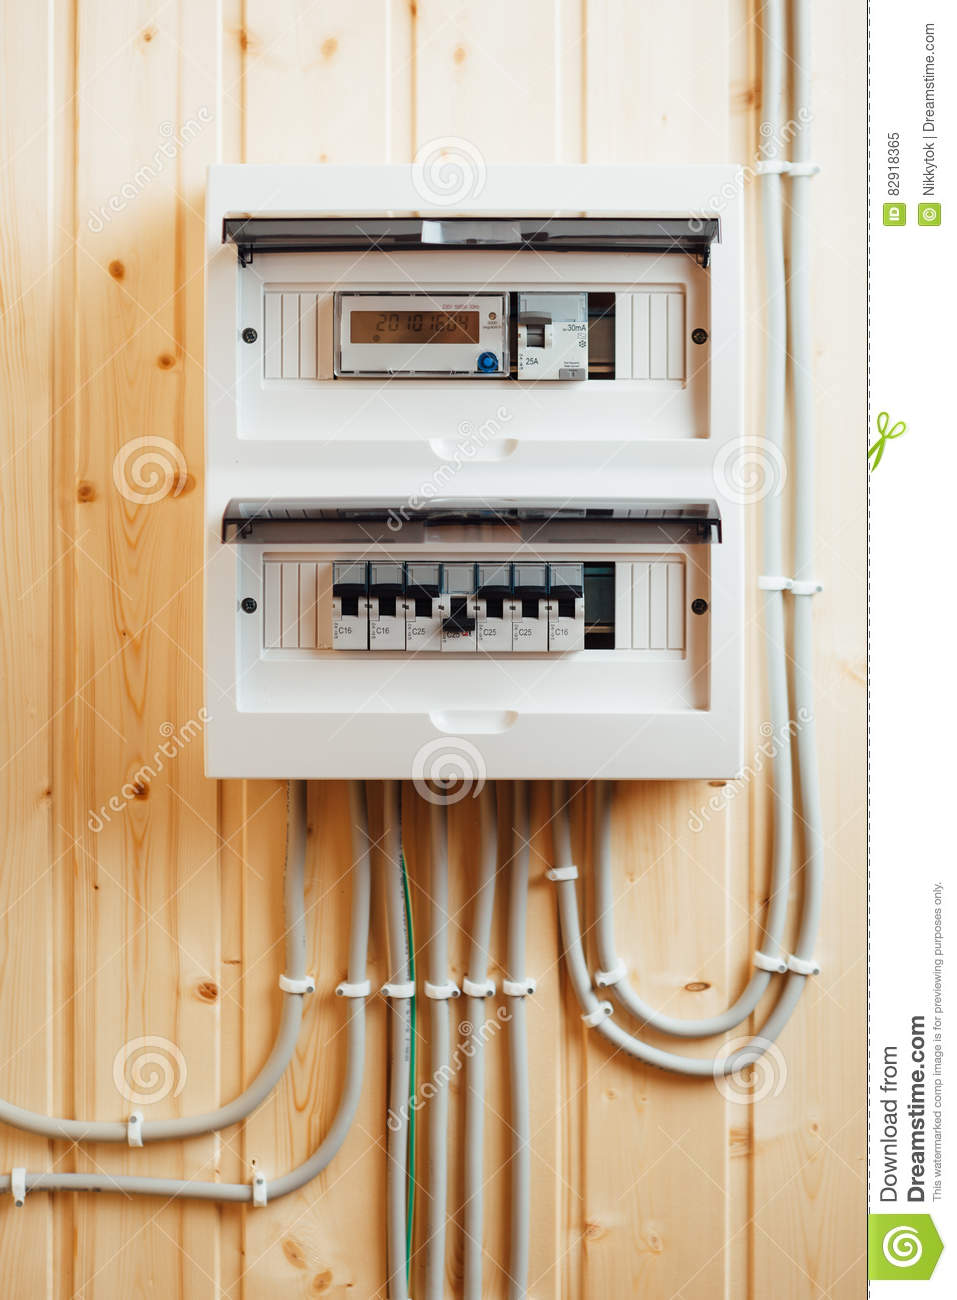 medium resolution of automatic fuses in electricity distribution box inside wooden house